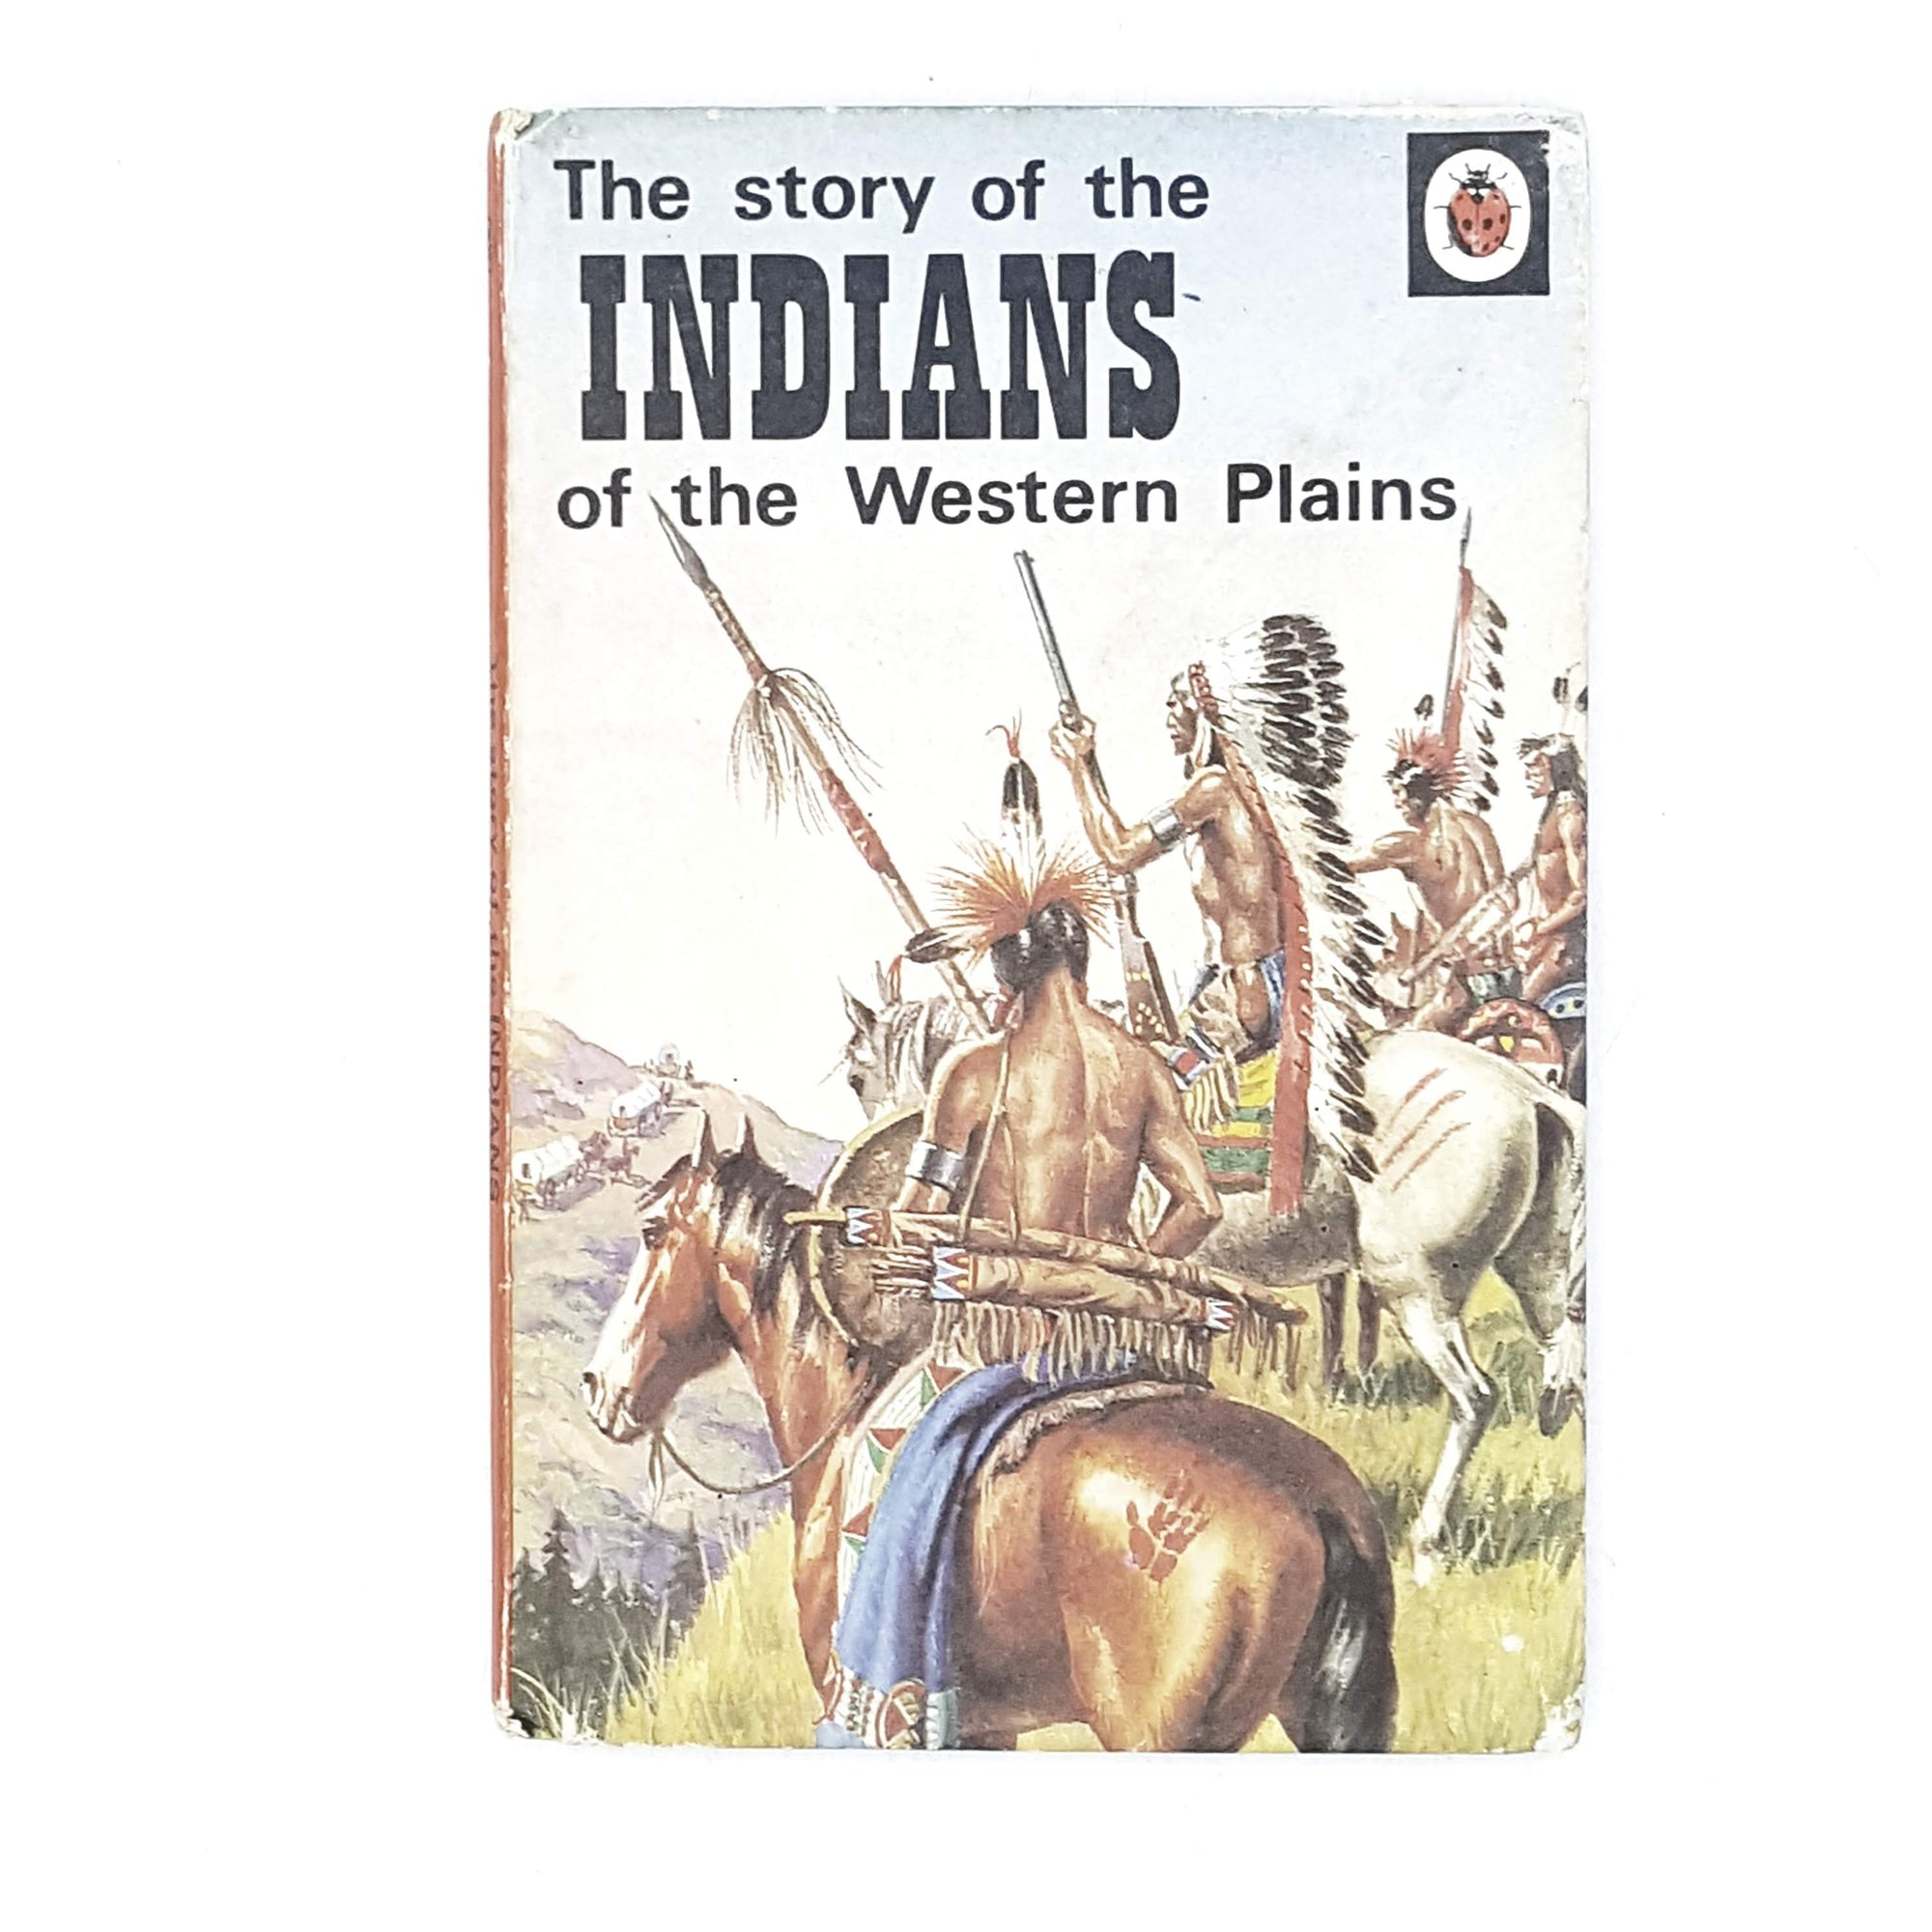 Vintage Ladybird: The Story of the Indians of the Western Plains 1973